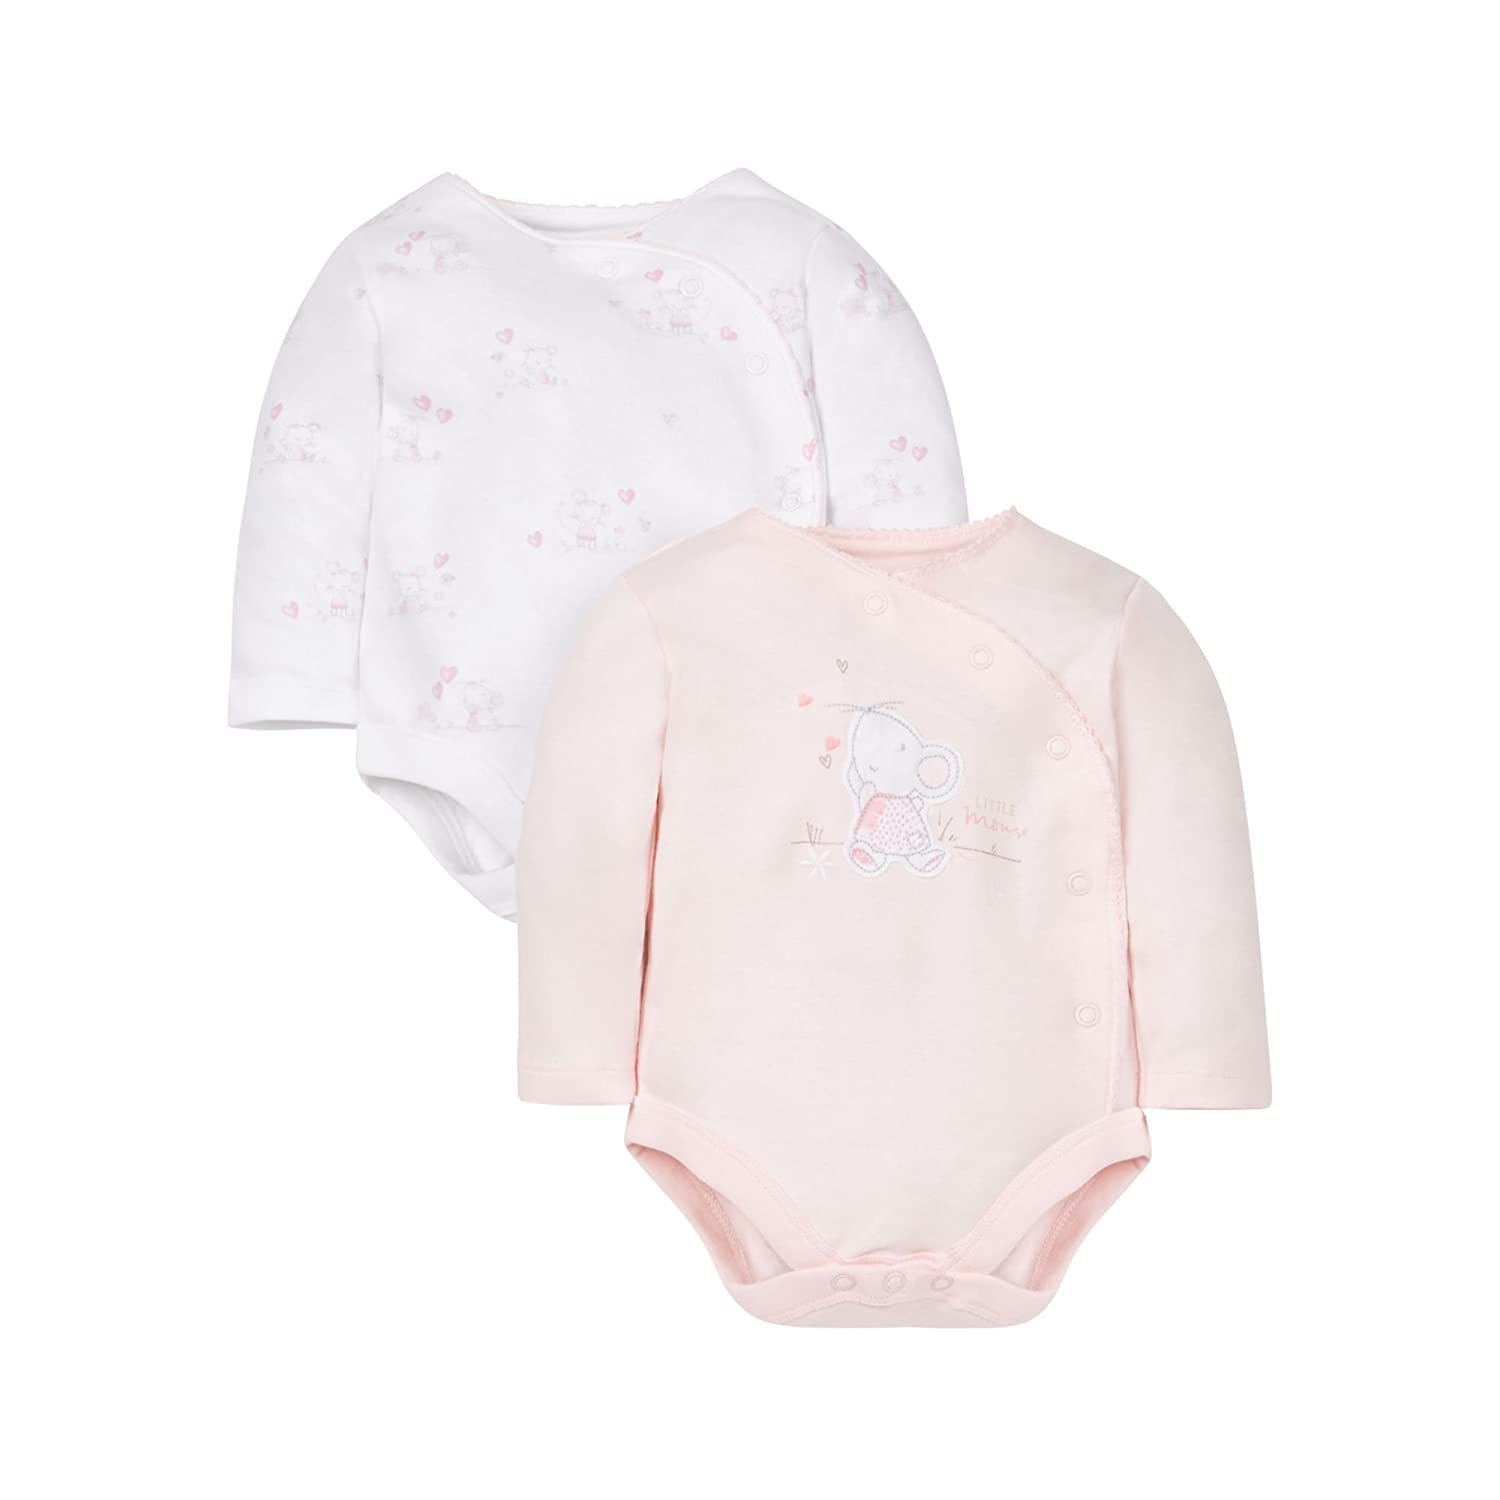 Mothercare Little Mouse Bodysuits - 2 Pack Multi LD247